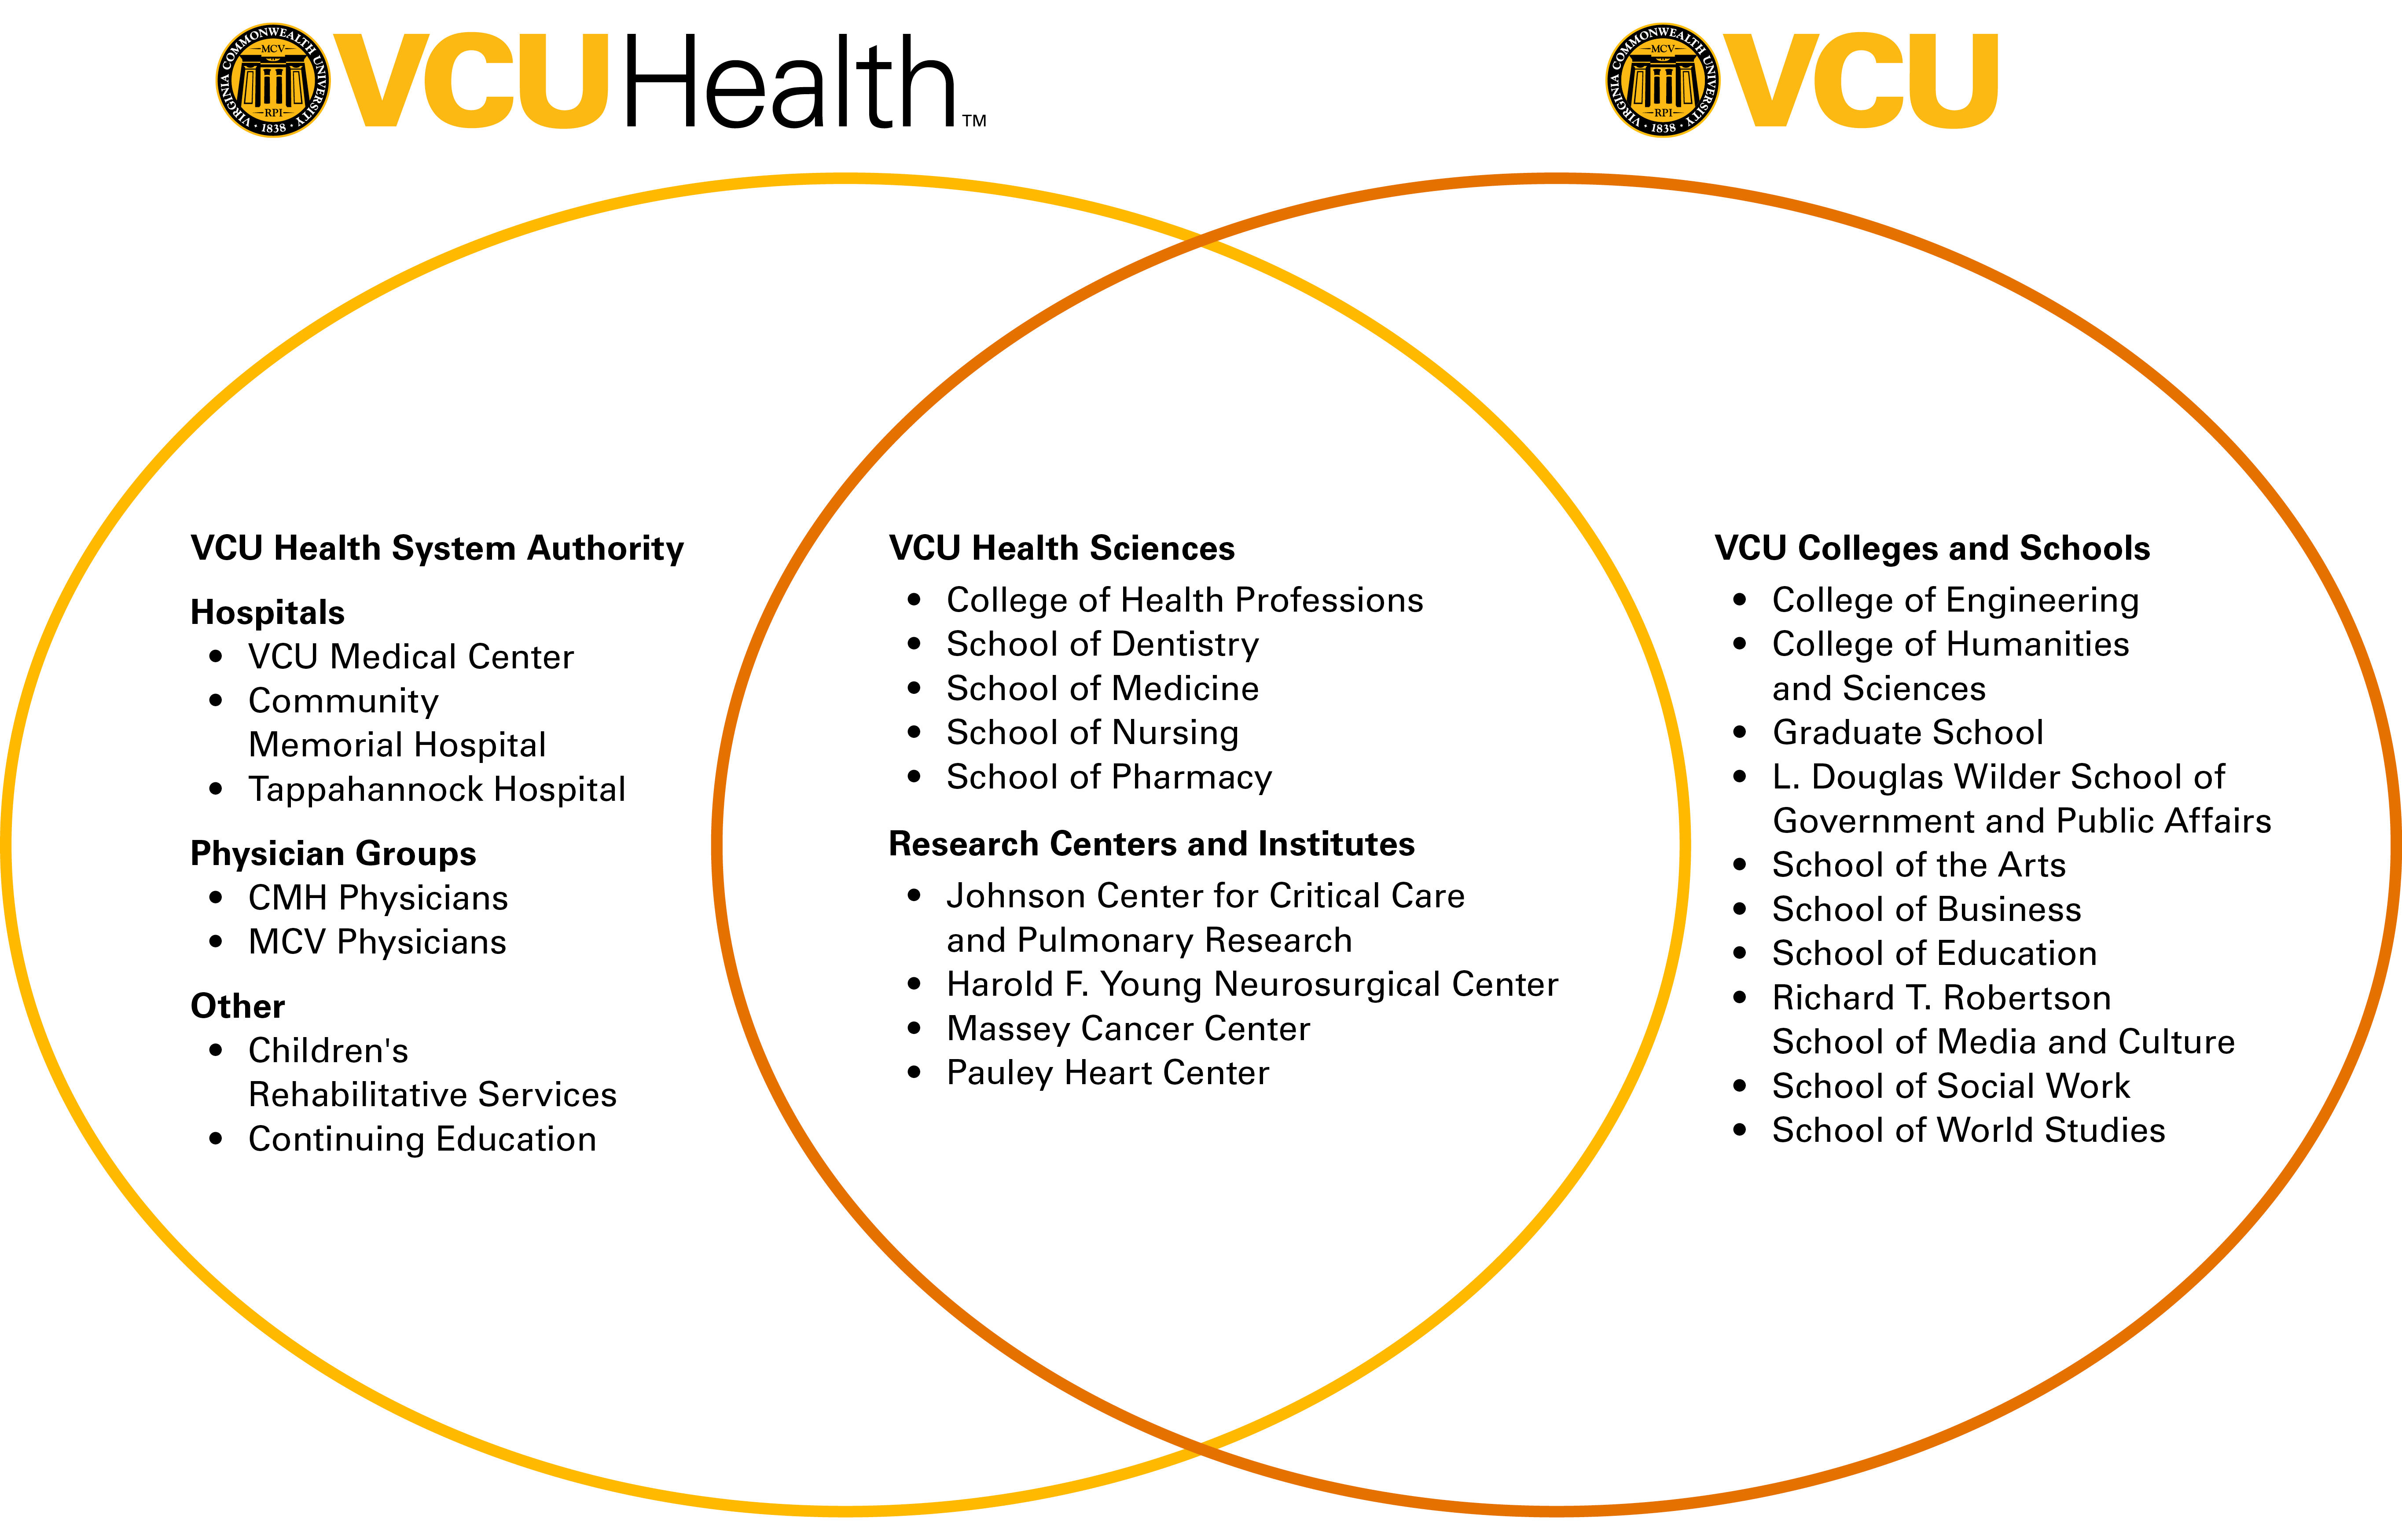 Venn diagram of major entities of VCU Health and VCU